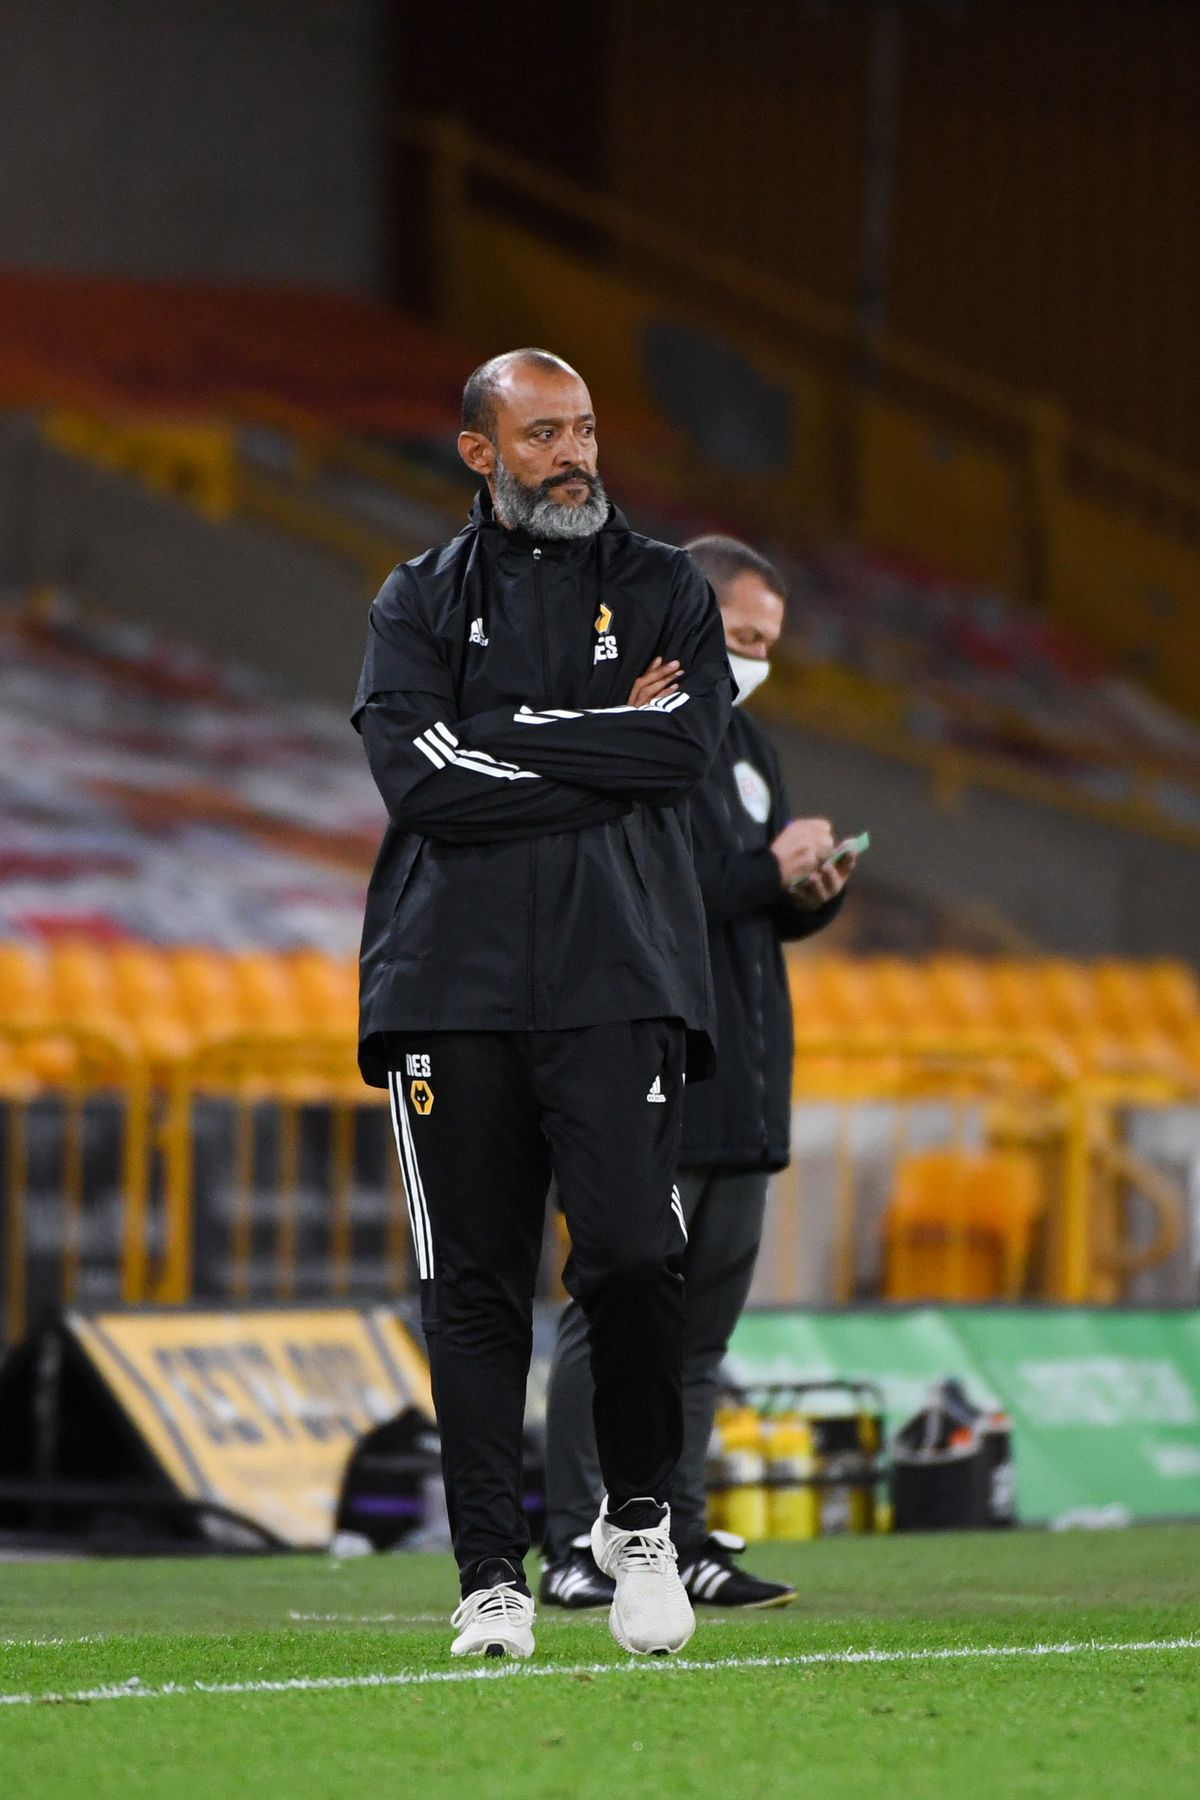 Nuno Espirito Santo the head coach / manager of Wolverhampton Wanderers (AMA)